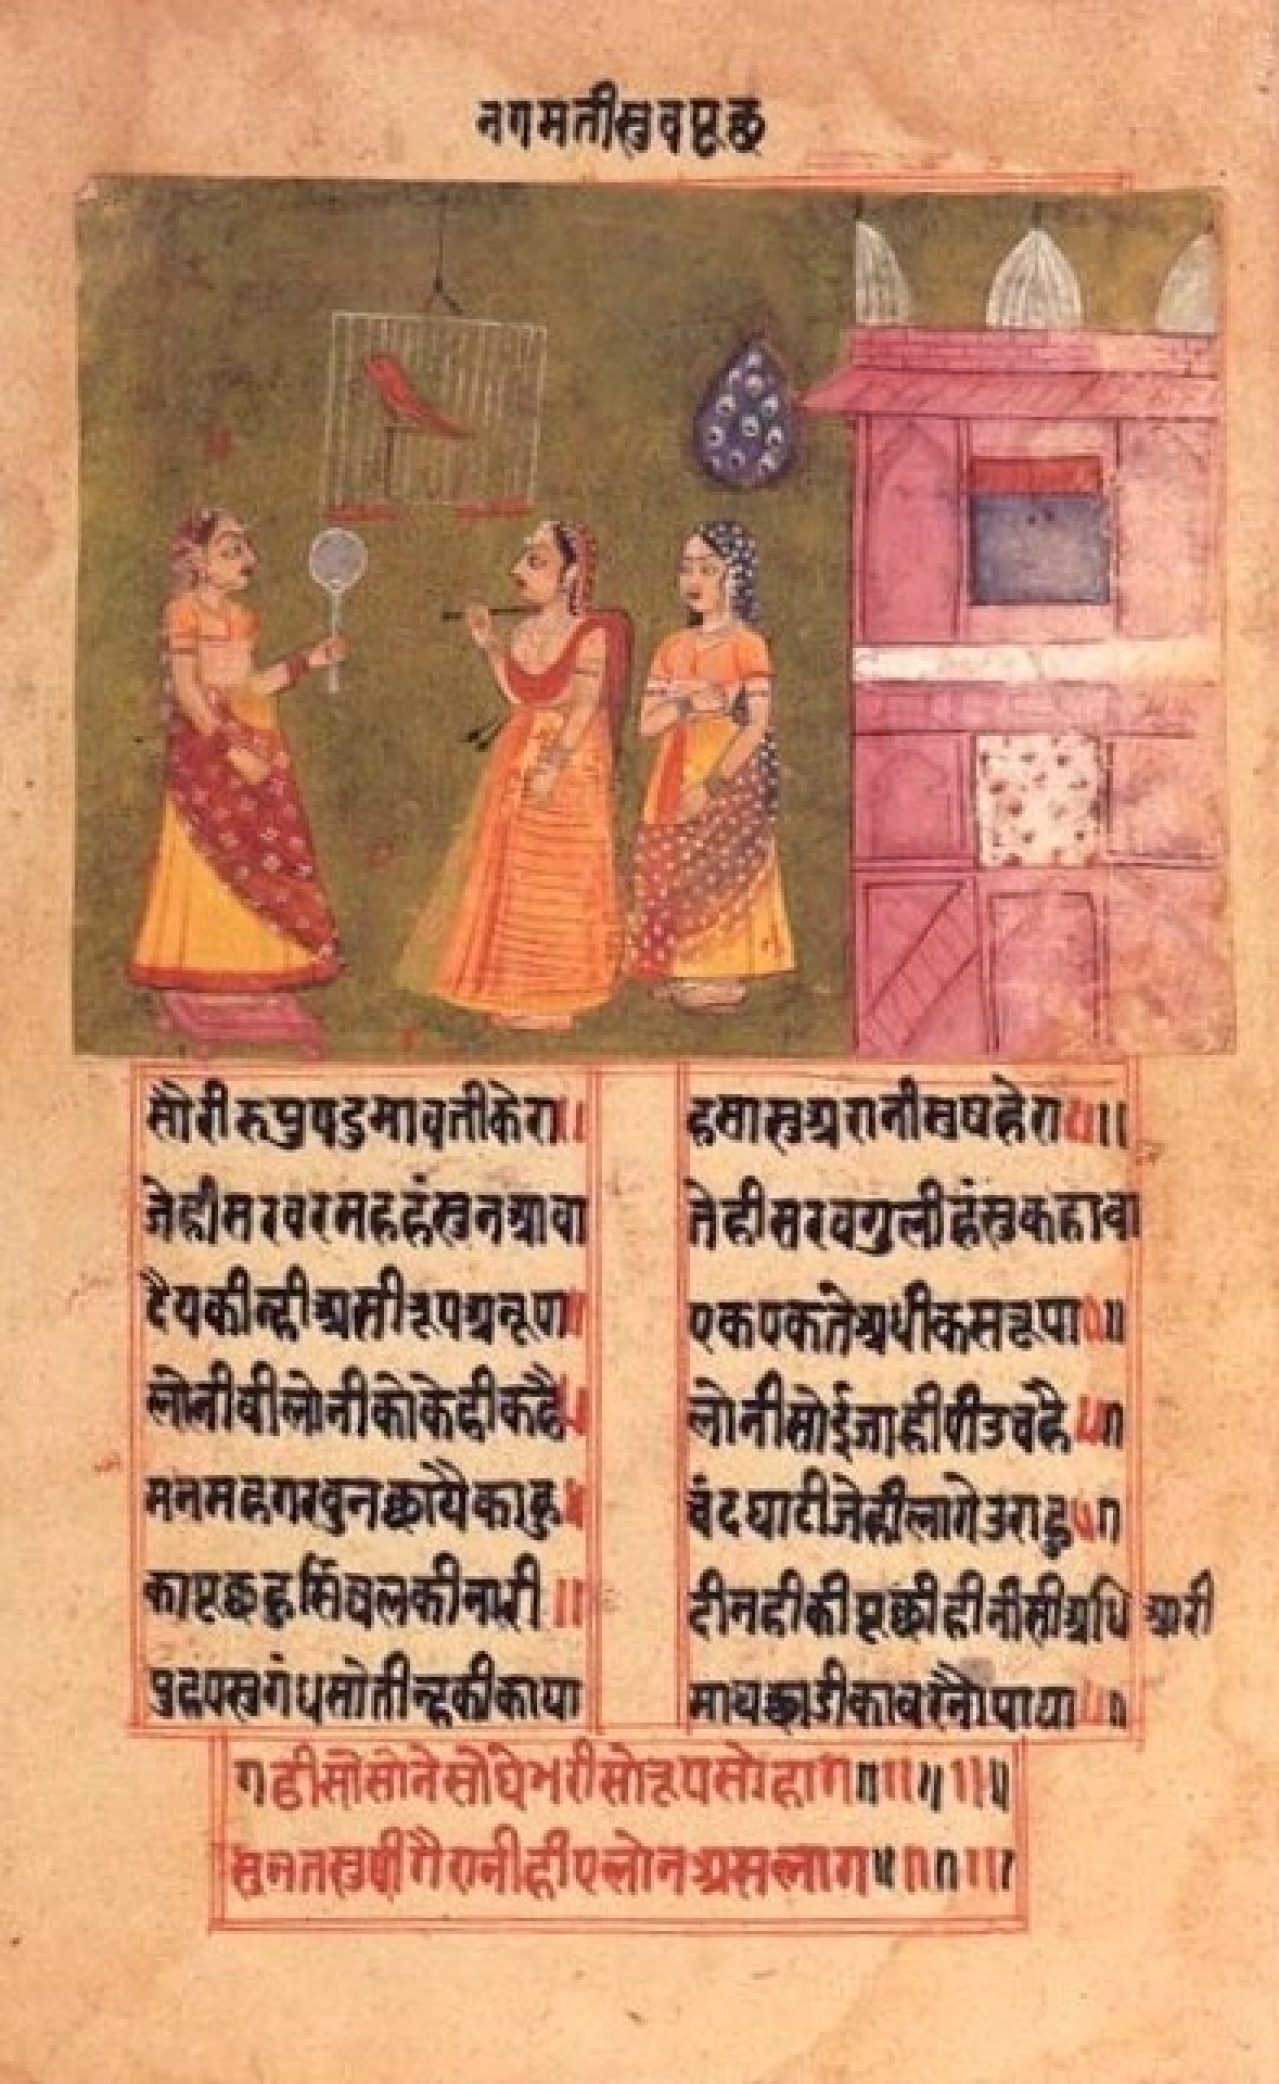 Queen Nagamati talks to her parrot, an illustrated manuscript of Padmavat, by Malik Muhammad Jayasi. (Source: Wikimedia Commons)